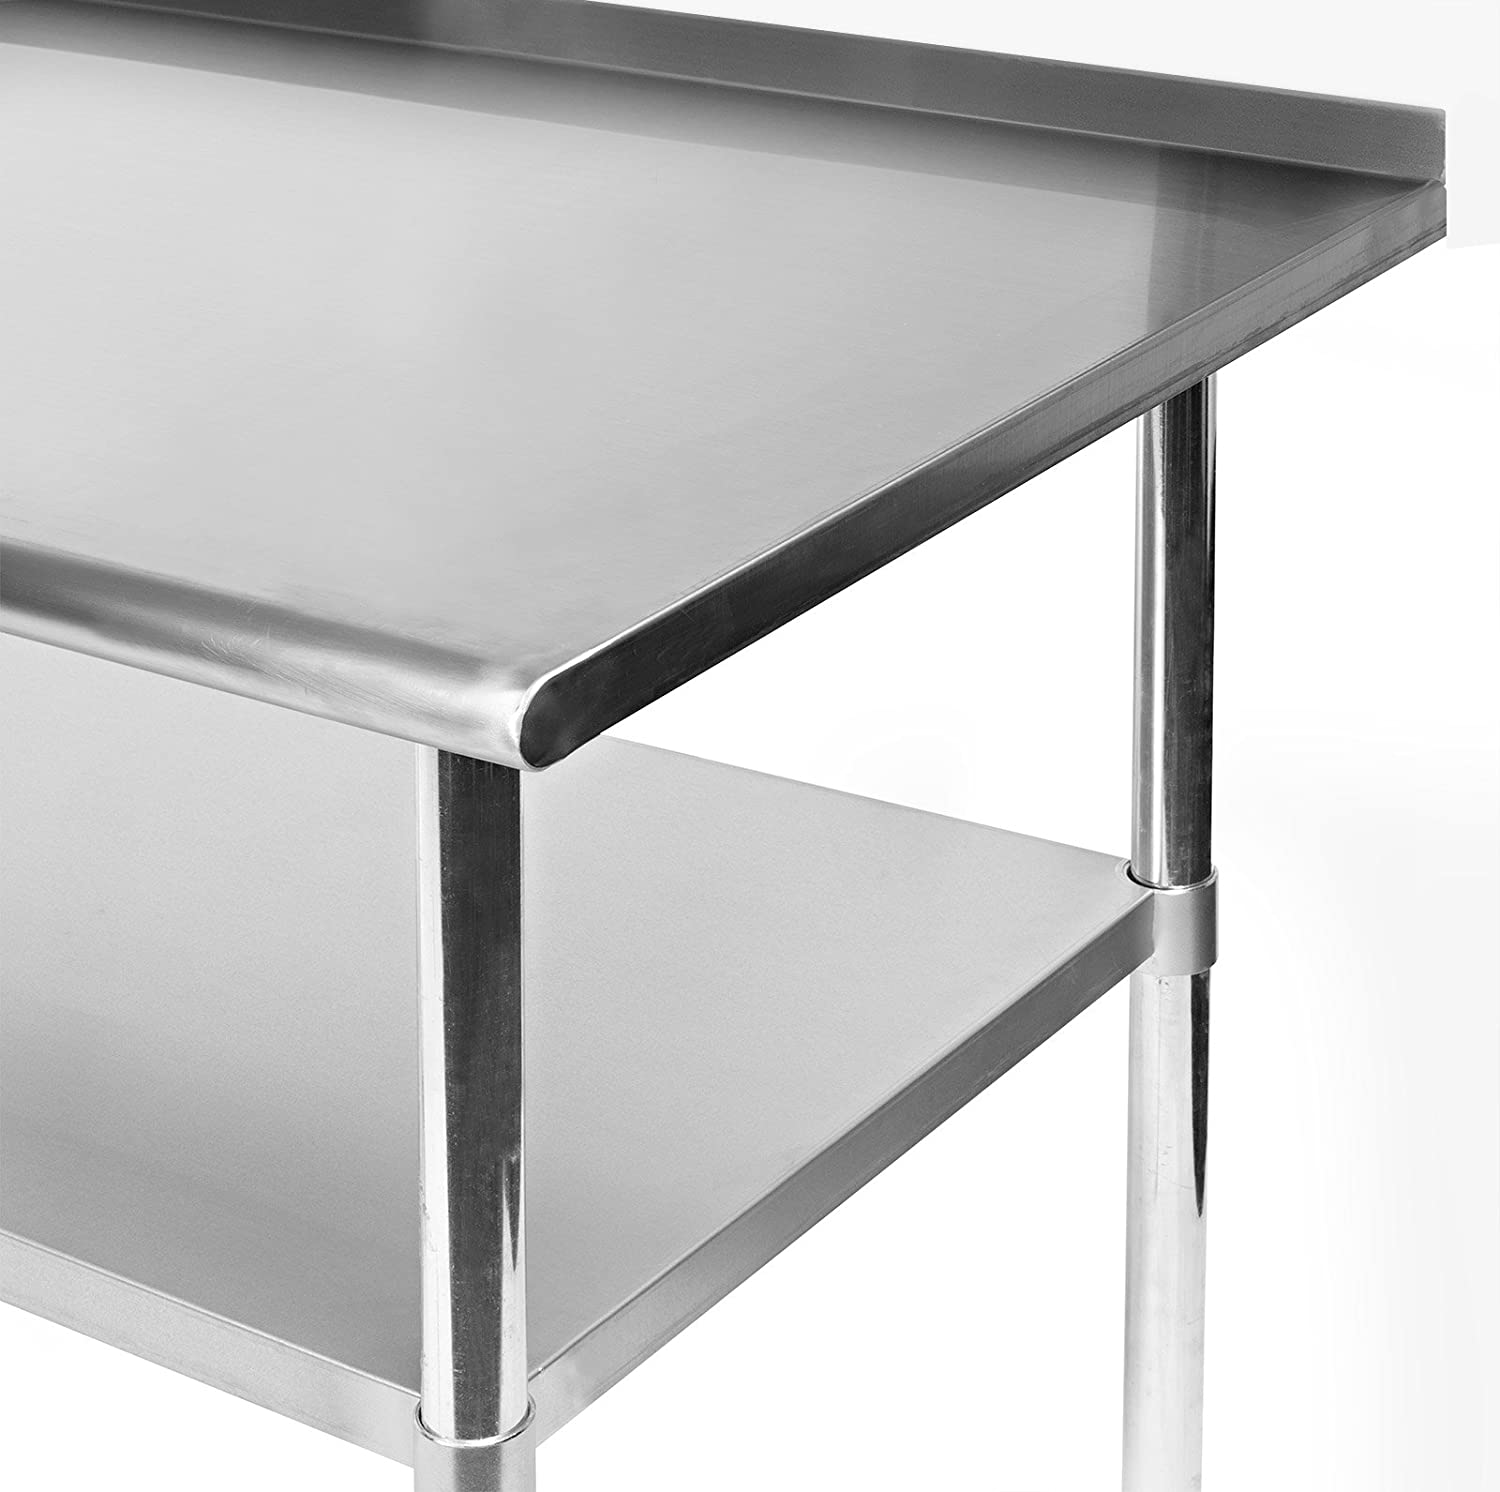 Amazoncom Gridmann NSF Stainless Steel Commercial Kitchen Prep - 4 foot stainless steel table